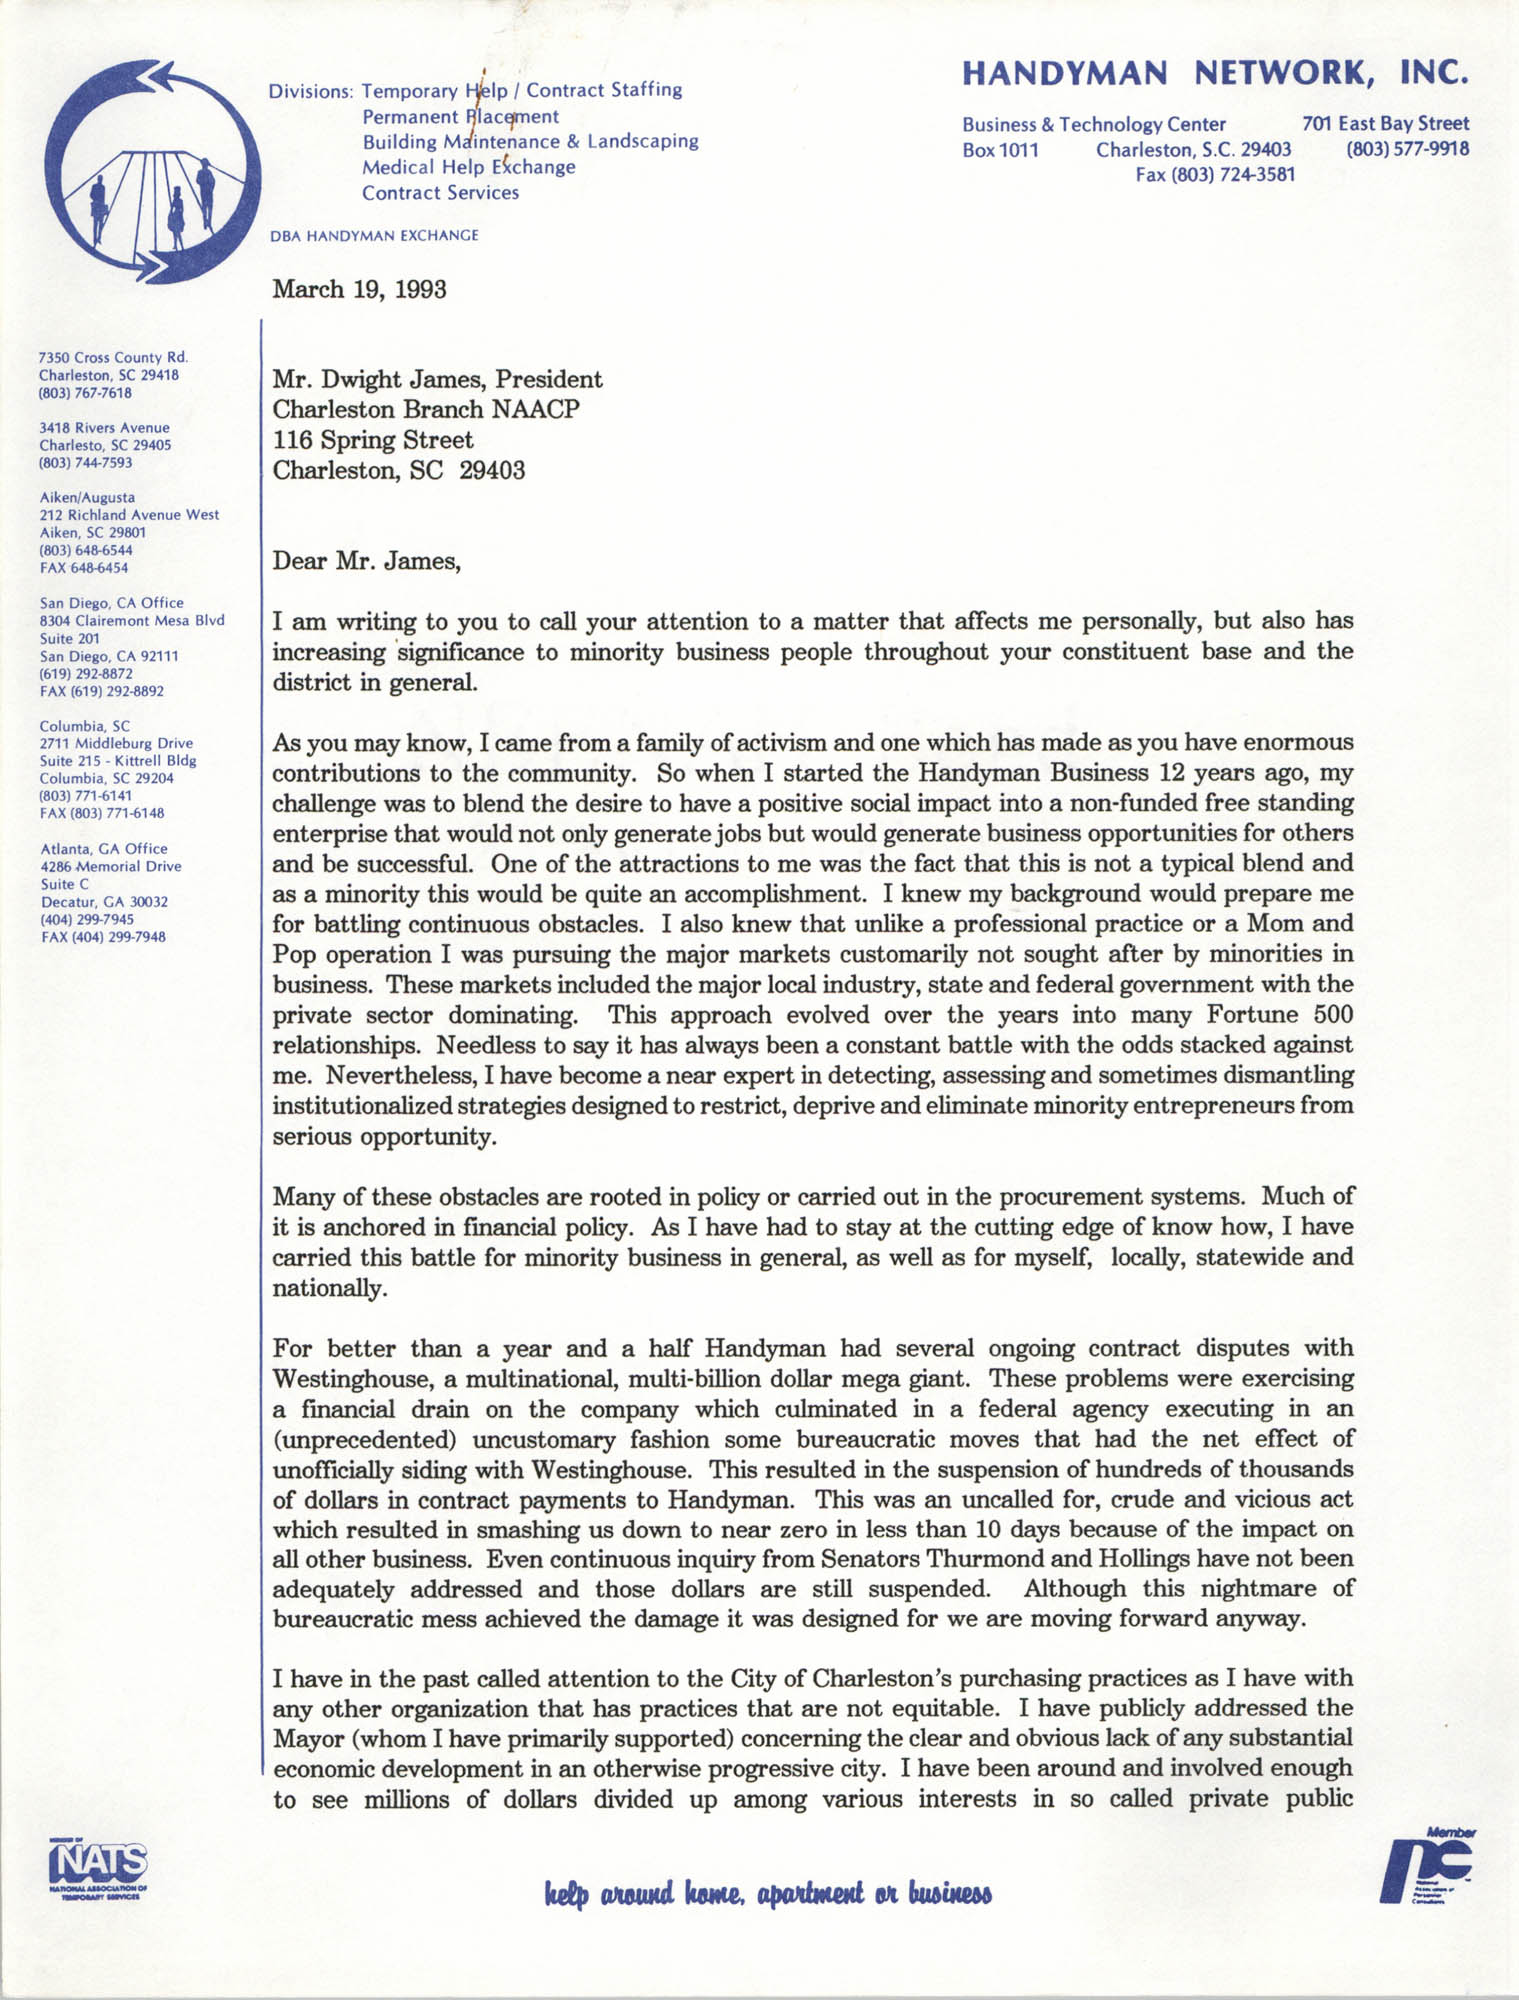 Letter from Andre V. Woods to Dwight James, March 19, 1993, Page 1